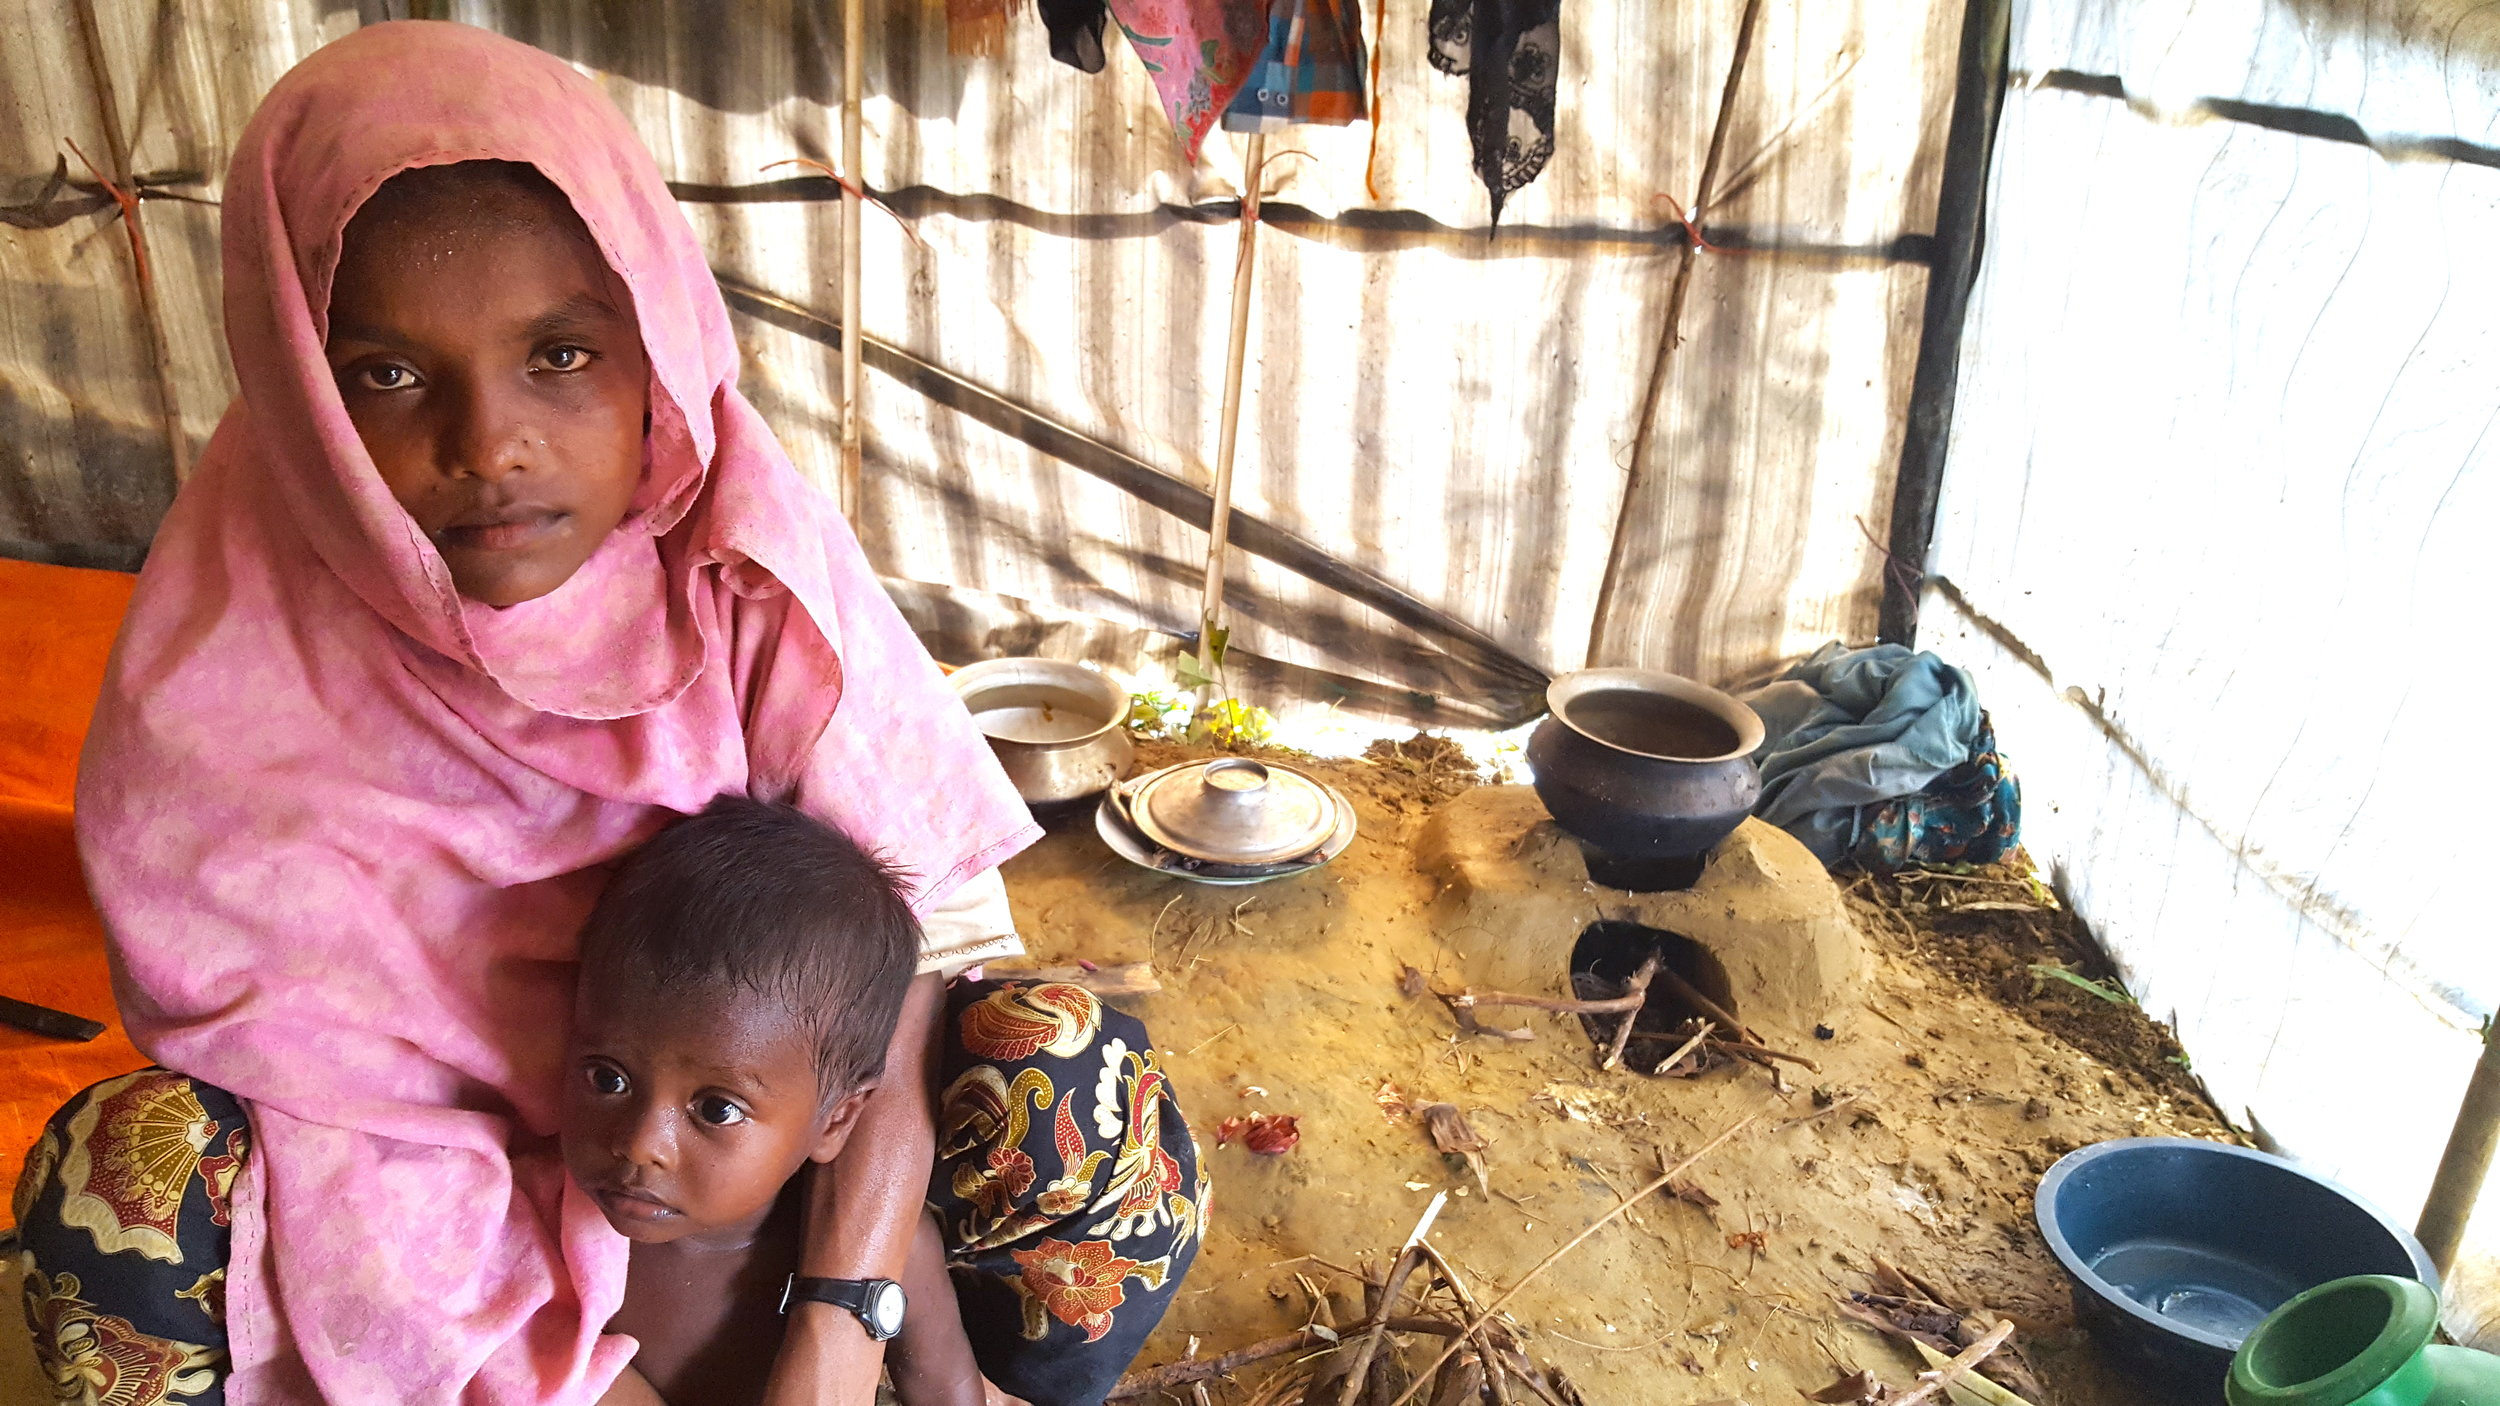 Most dwellings in Rohingya refugee camps appear like this on the inside. Many women and girls avoid venturing outside of these makeshift homes to avoid being kidnapped by traffickers or local criminals. In this sense, the immediate threat of sexual violence is present in both Myanmar and Bangladesh. The child in the photo did not own any clothing.